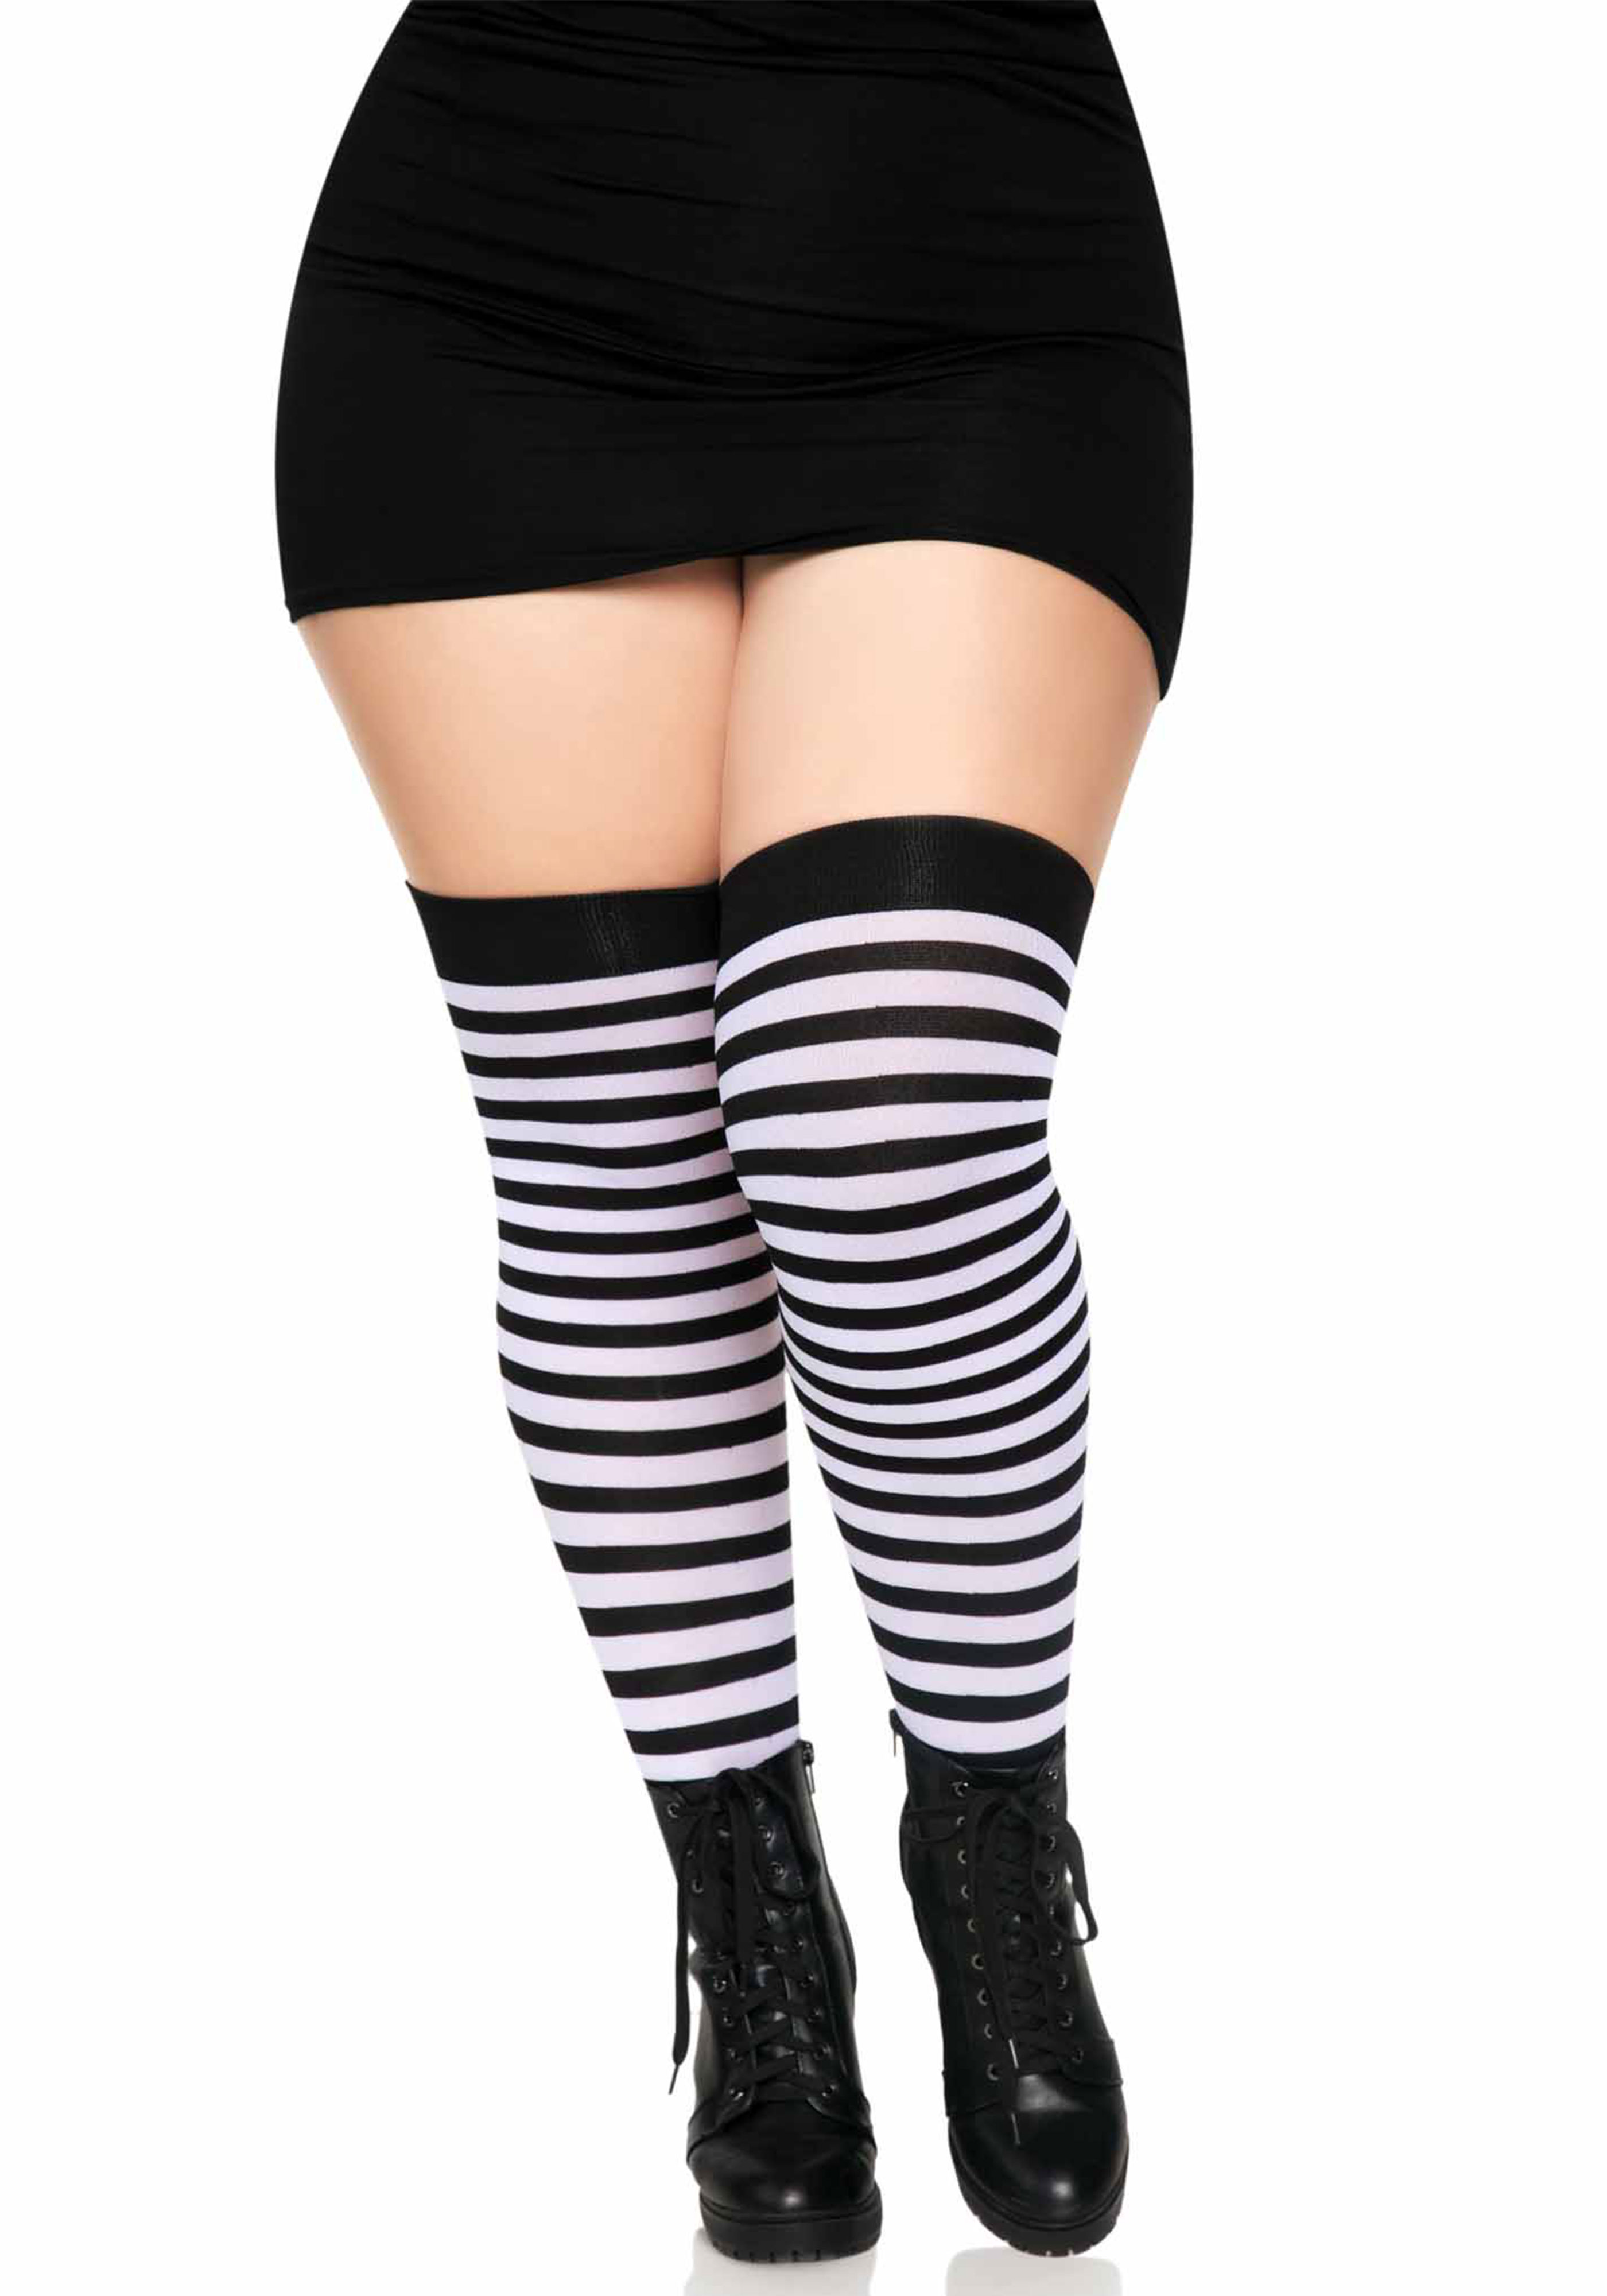 Thigh High Fishnet Stocking Lace Top Leg Avenue 9061